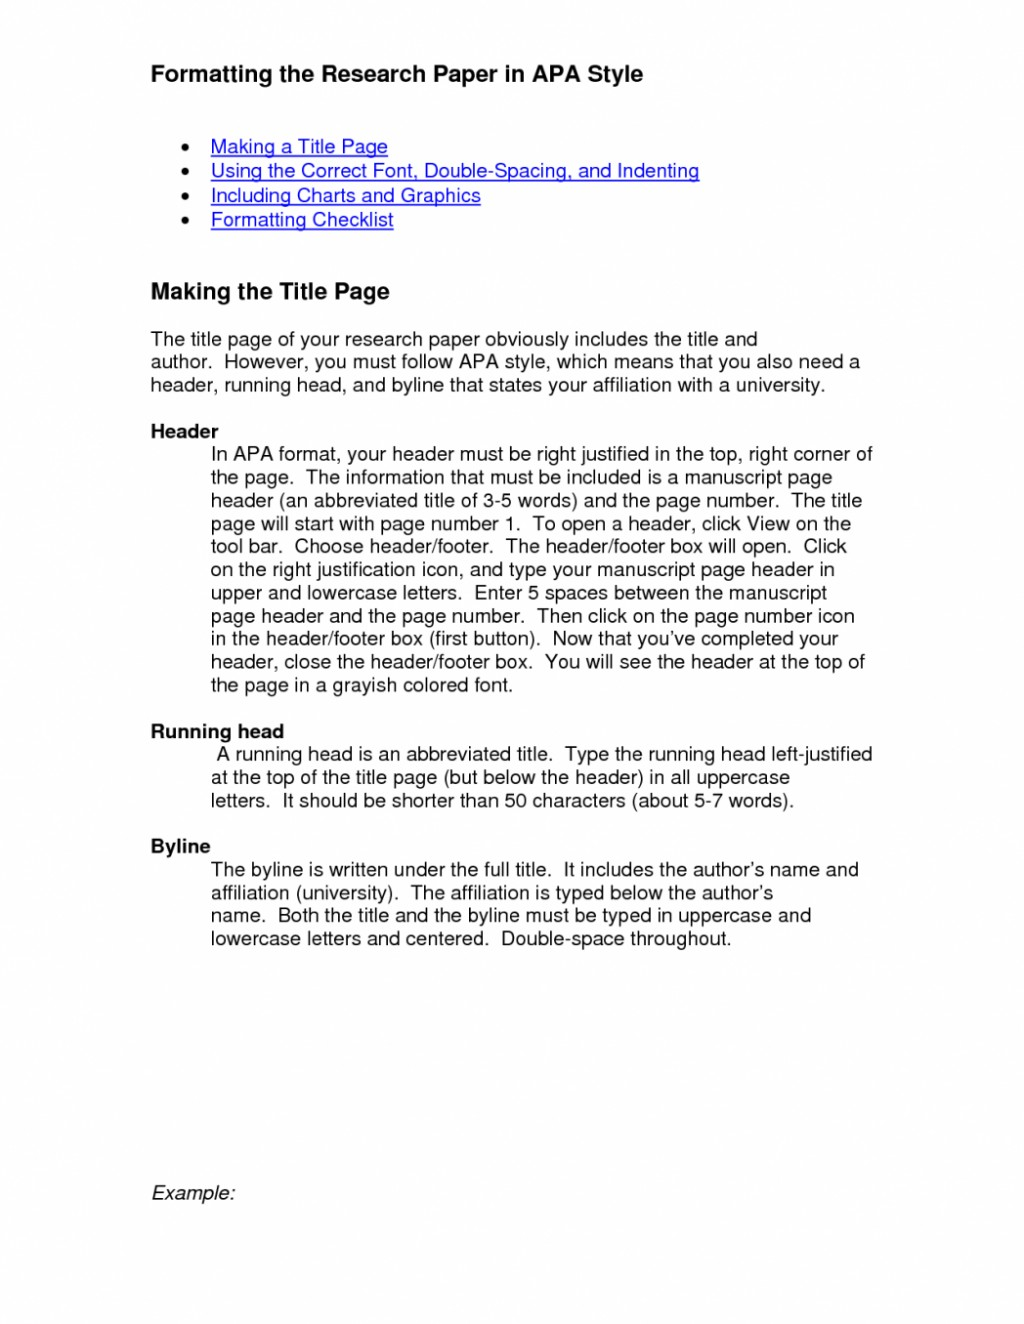 020 Proper Essay Format Correct Mys Of Research Papers On Psychology Michael Pap 1048x1356 Unique Pdf Paper College Argumentative Large